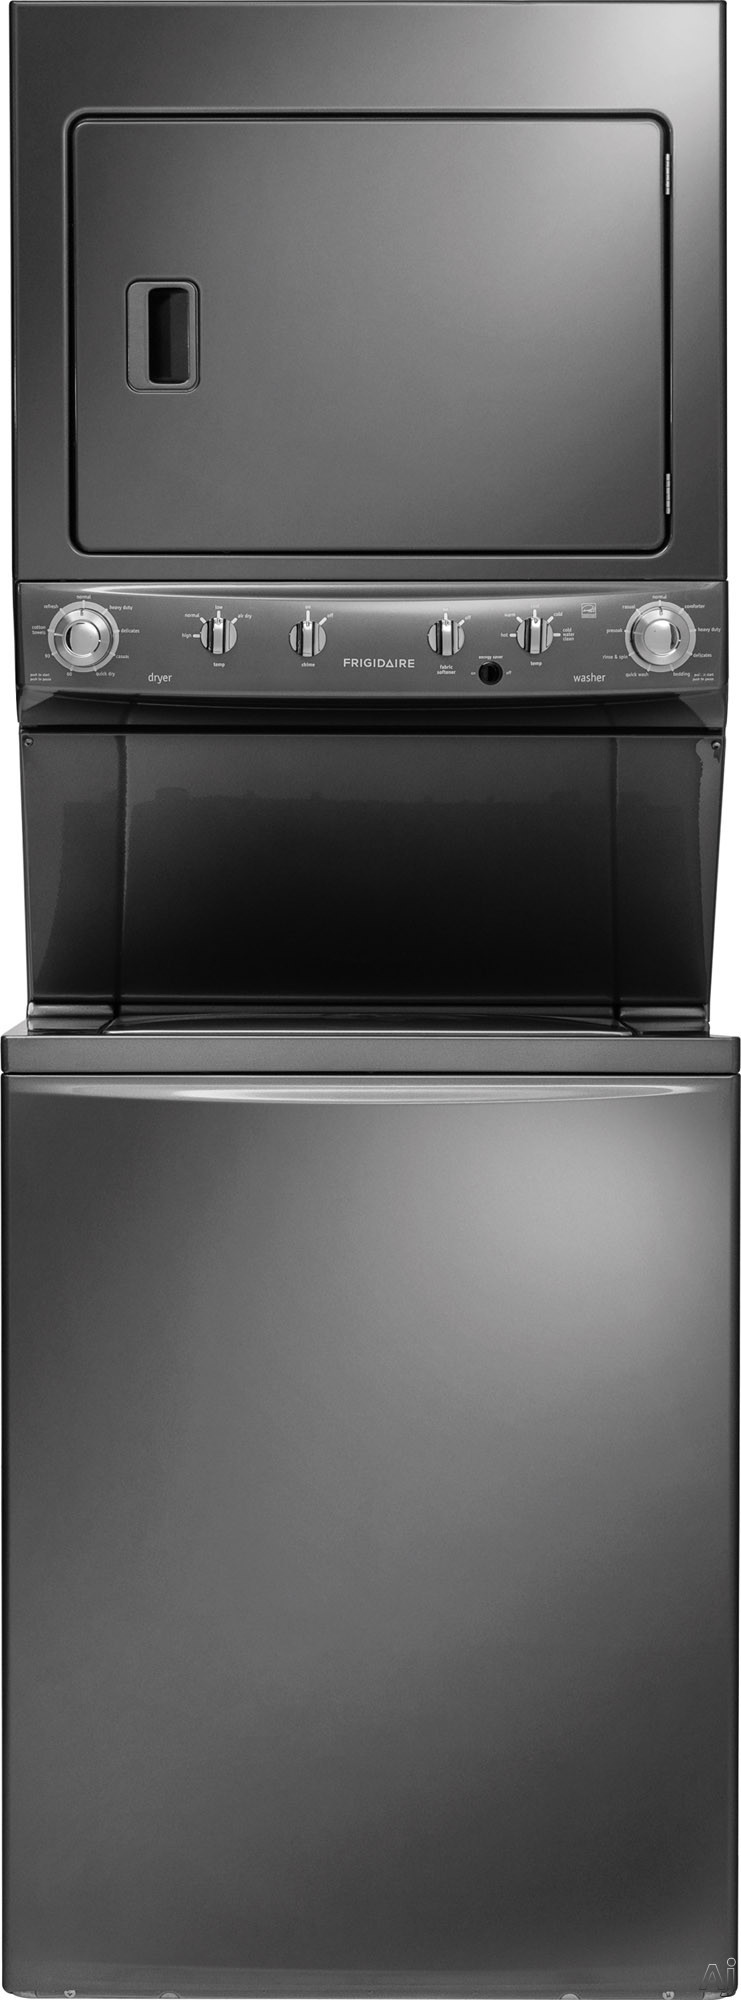 Frigidaire FFLE4033QT Electric Washer/Dryer High Efficiency Laundry Center 883783